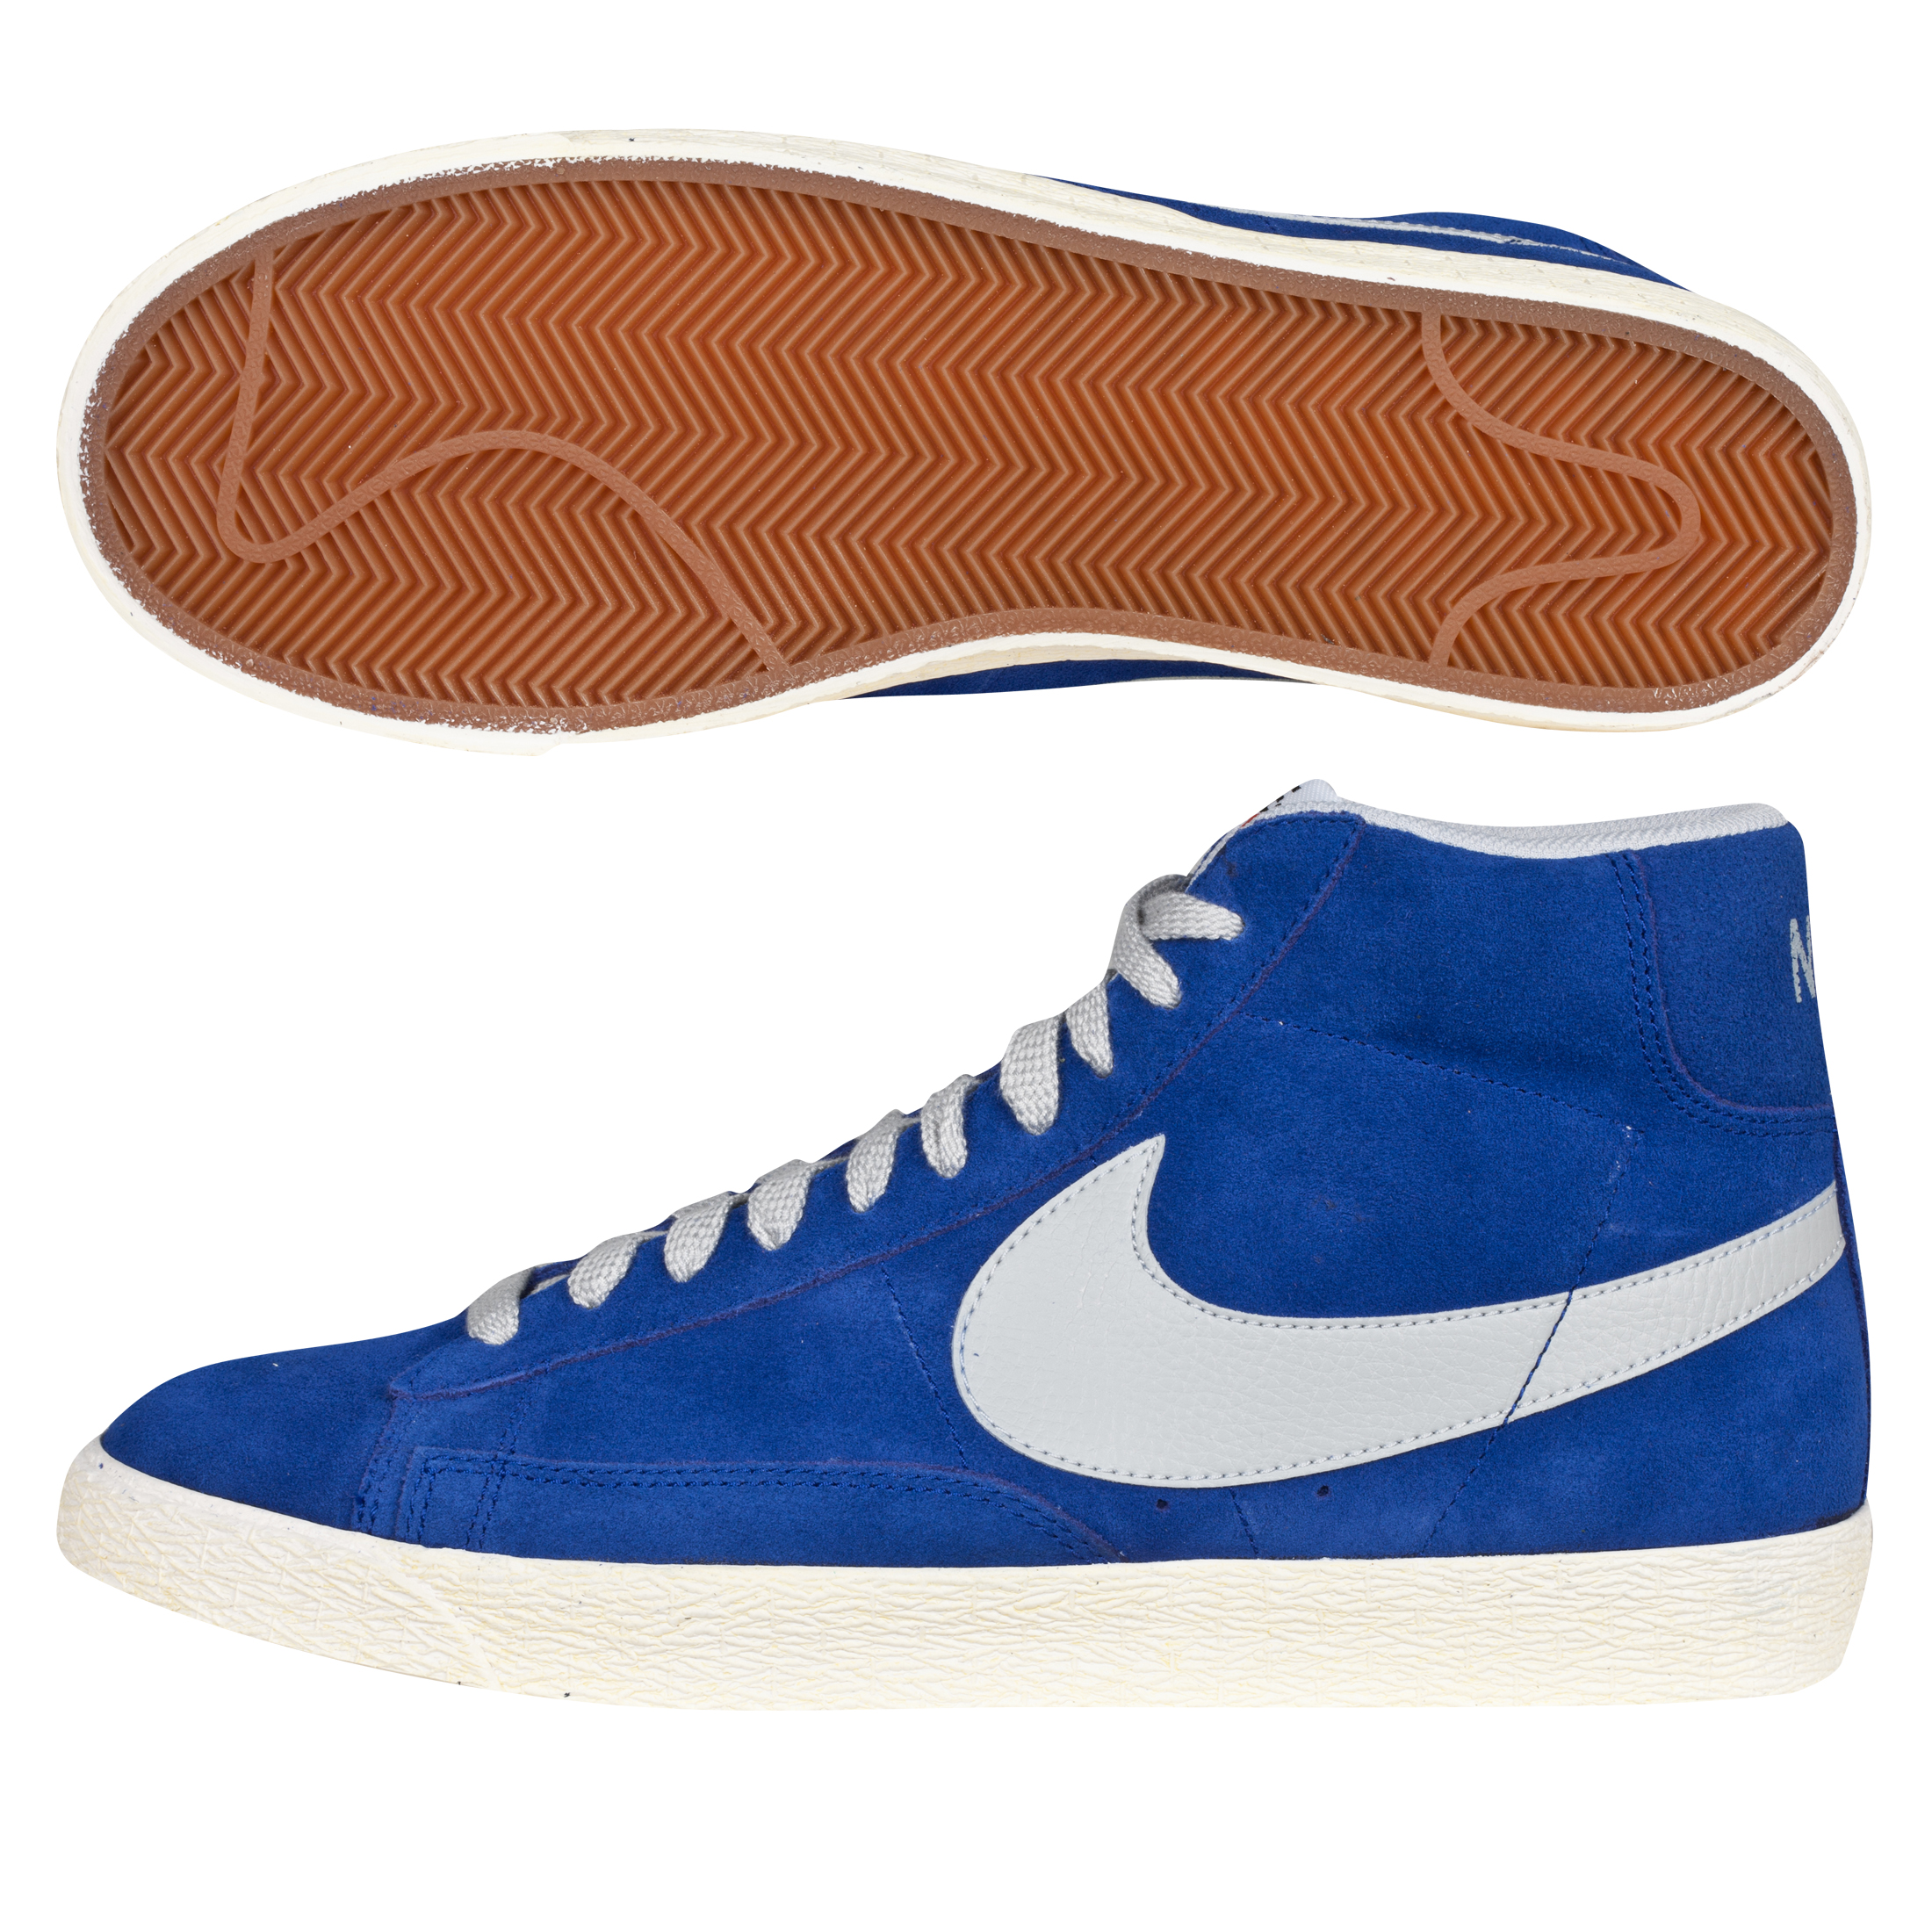 Nike Blazer Mid Vintage Suede Trainers - Deep Royal/Strata Grey